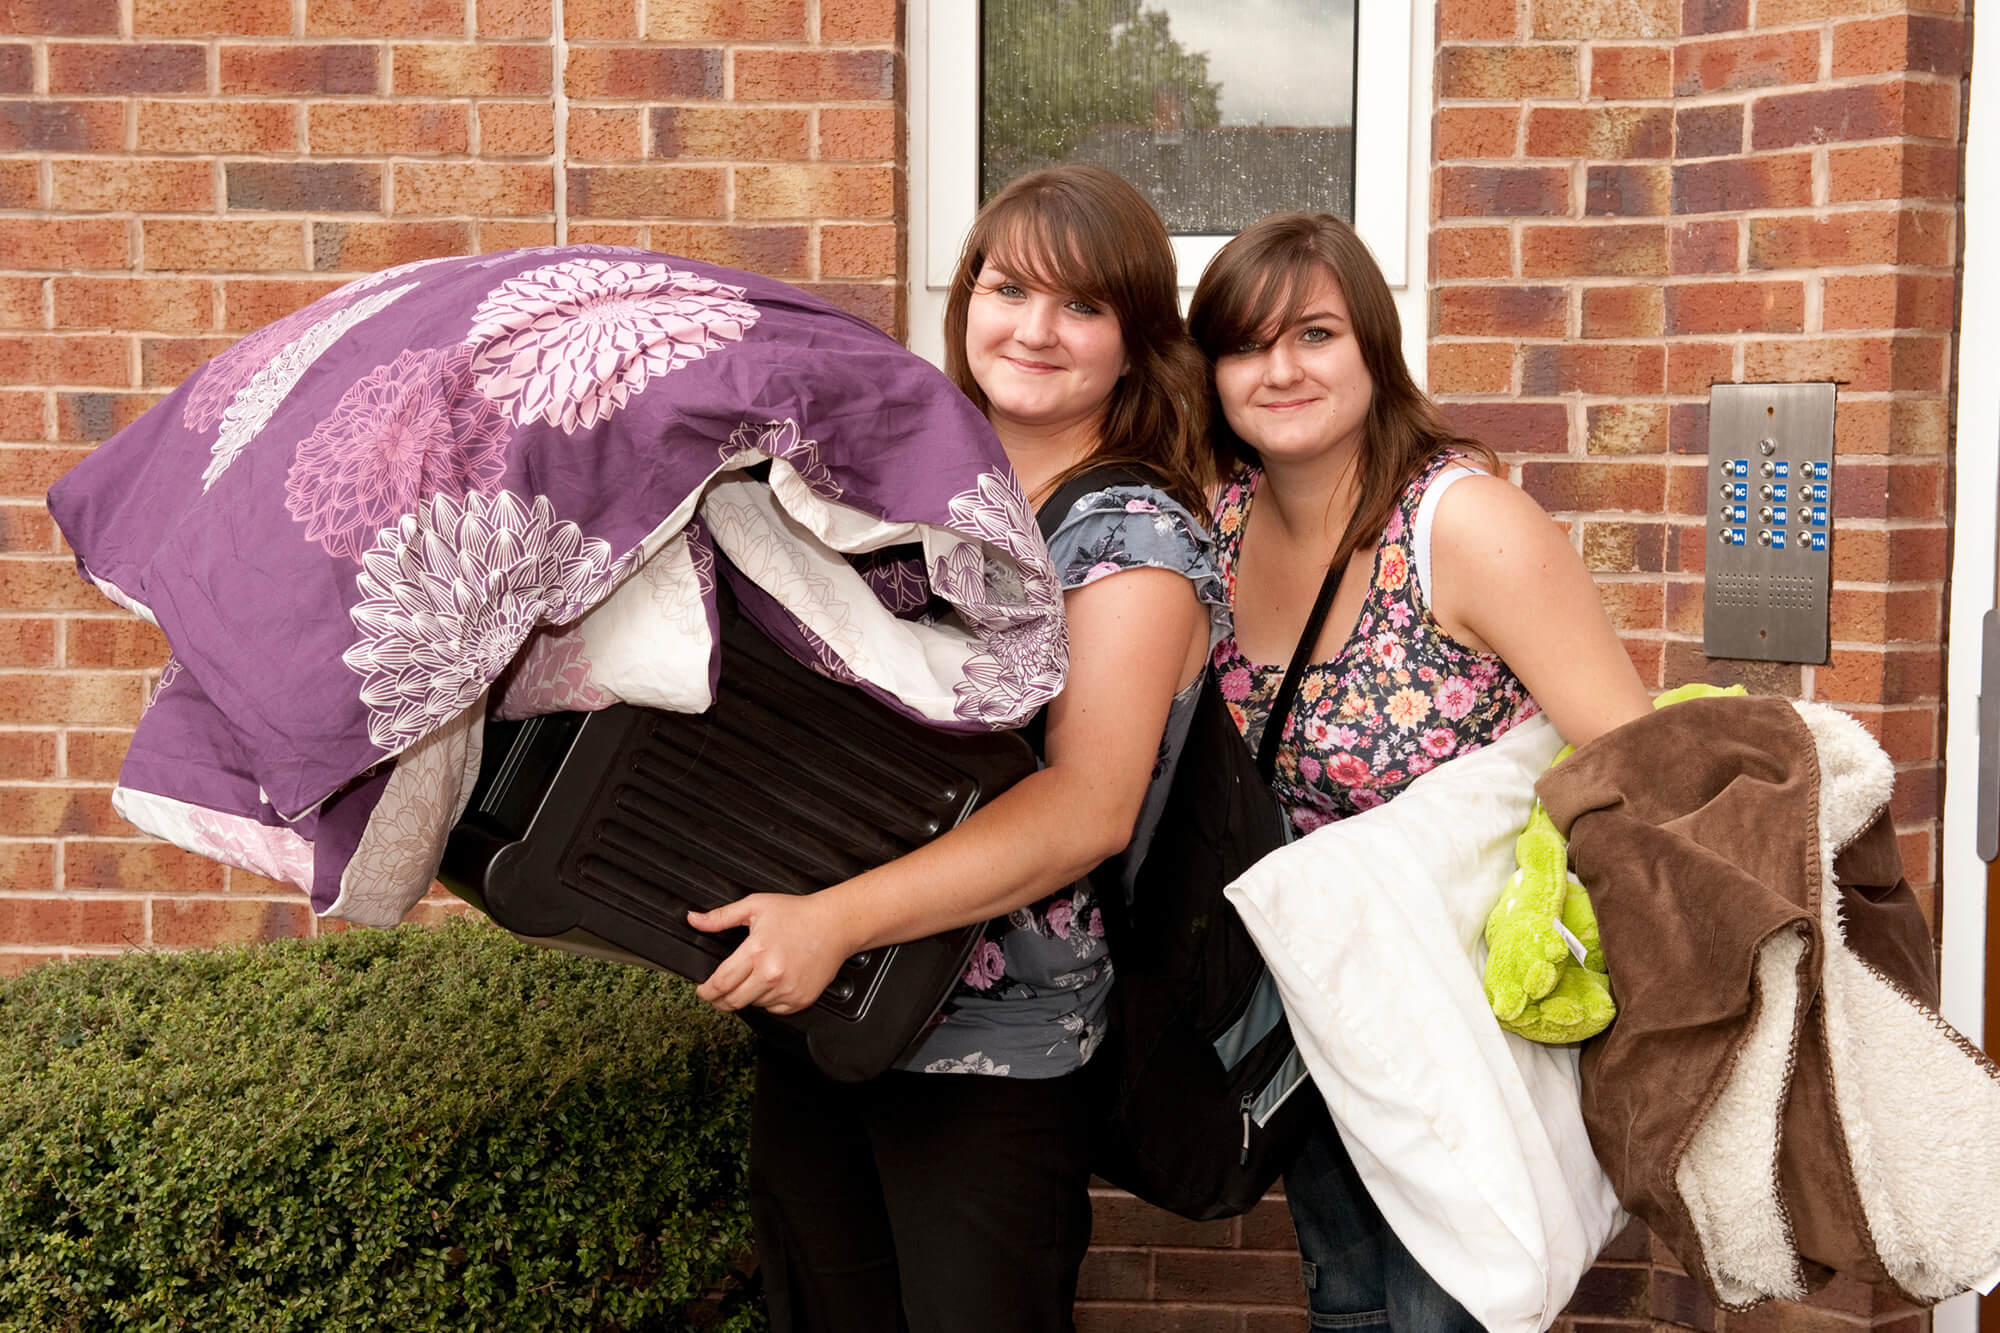 Two people holding quilts and pillows getting ready to move into new accommodation